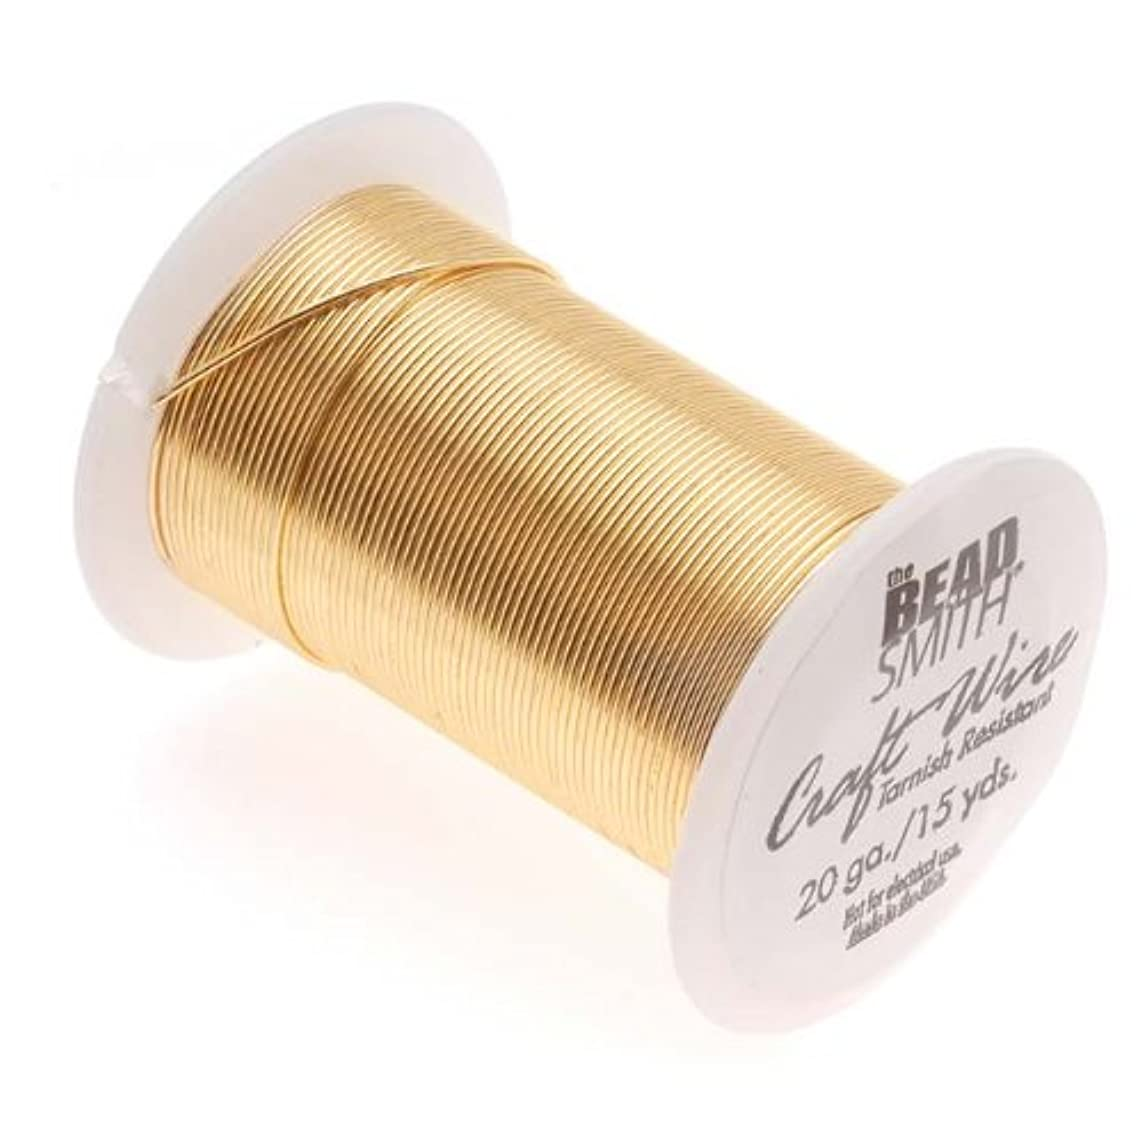 Beadsmith 20 Gauge Tarnish Resistant Copper Wire, 15 Yard/13.5m, Gold